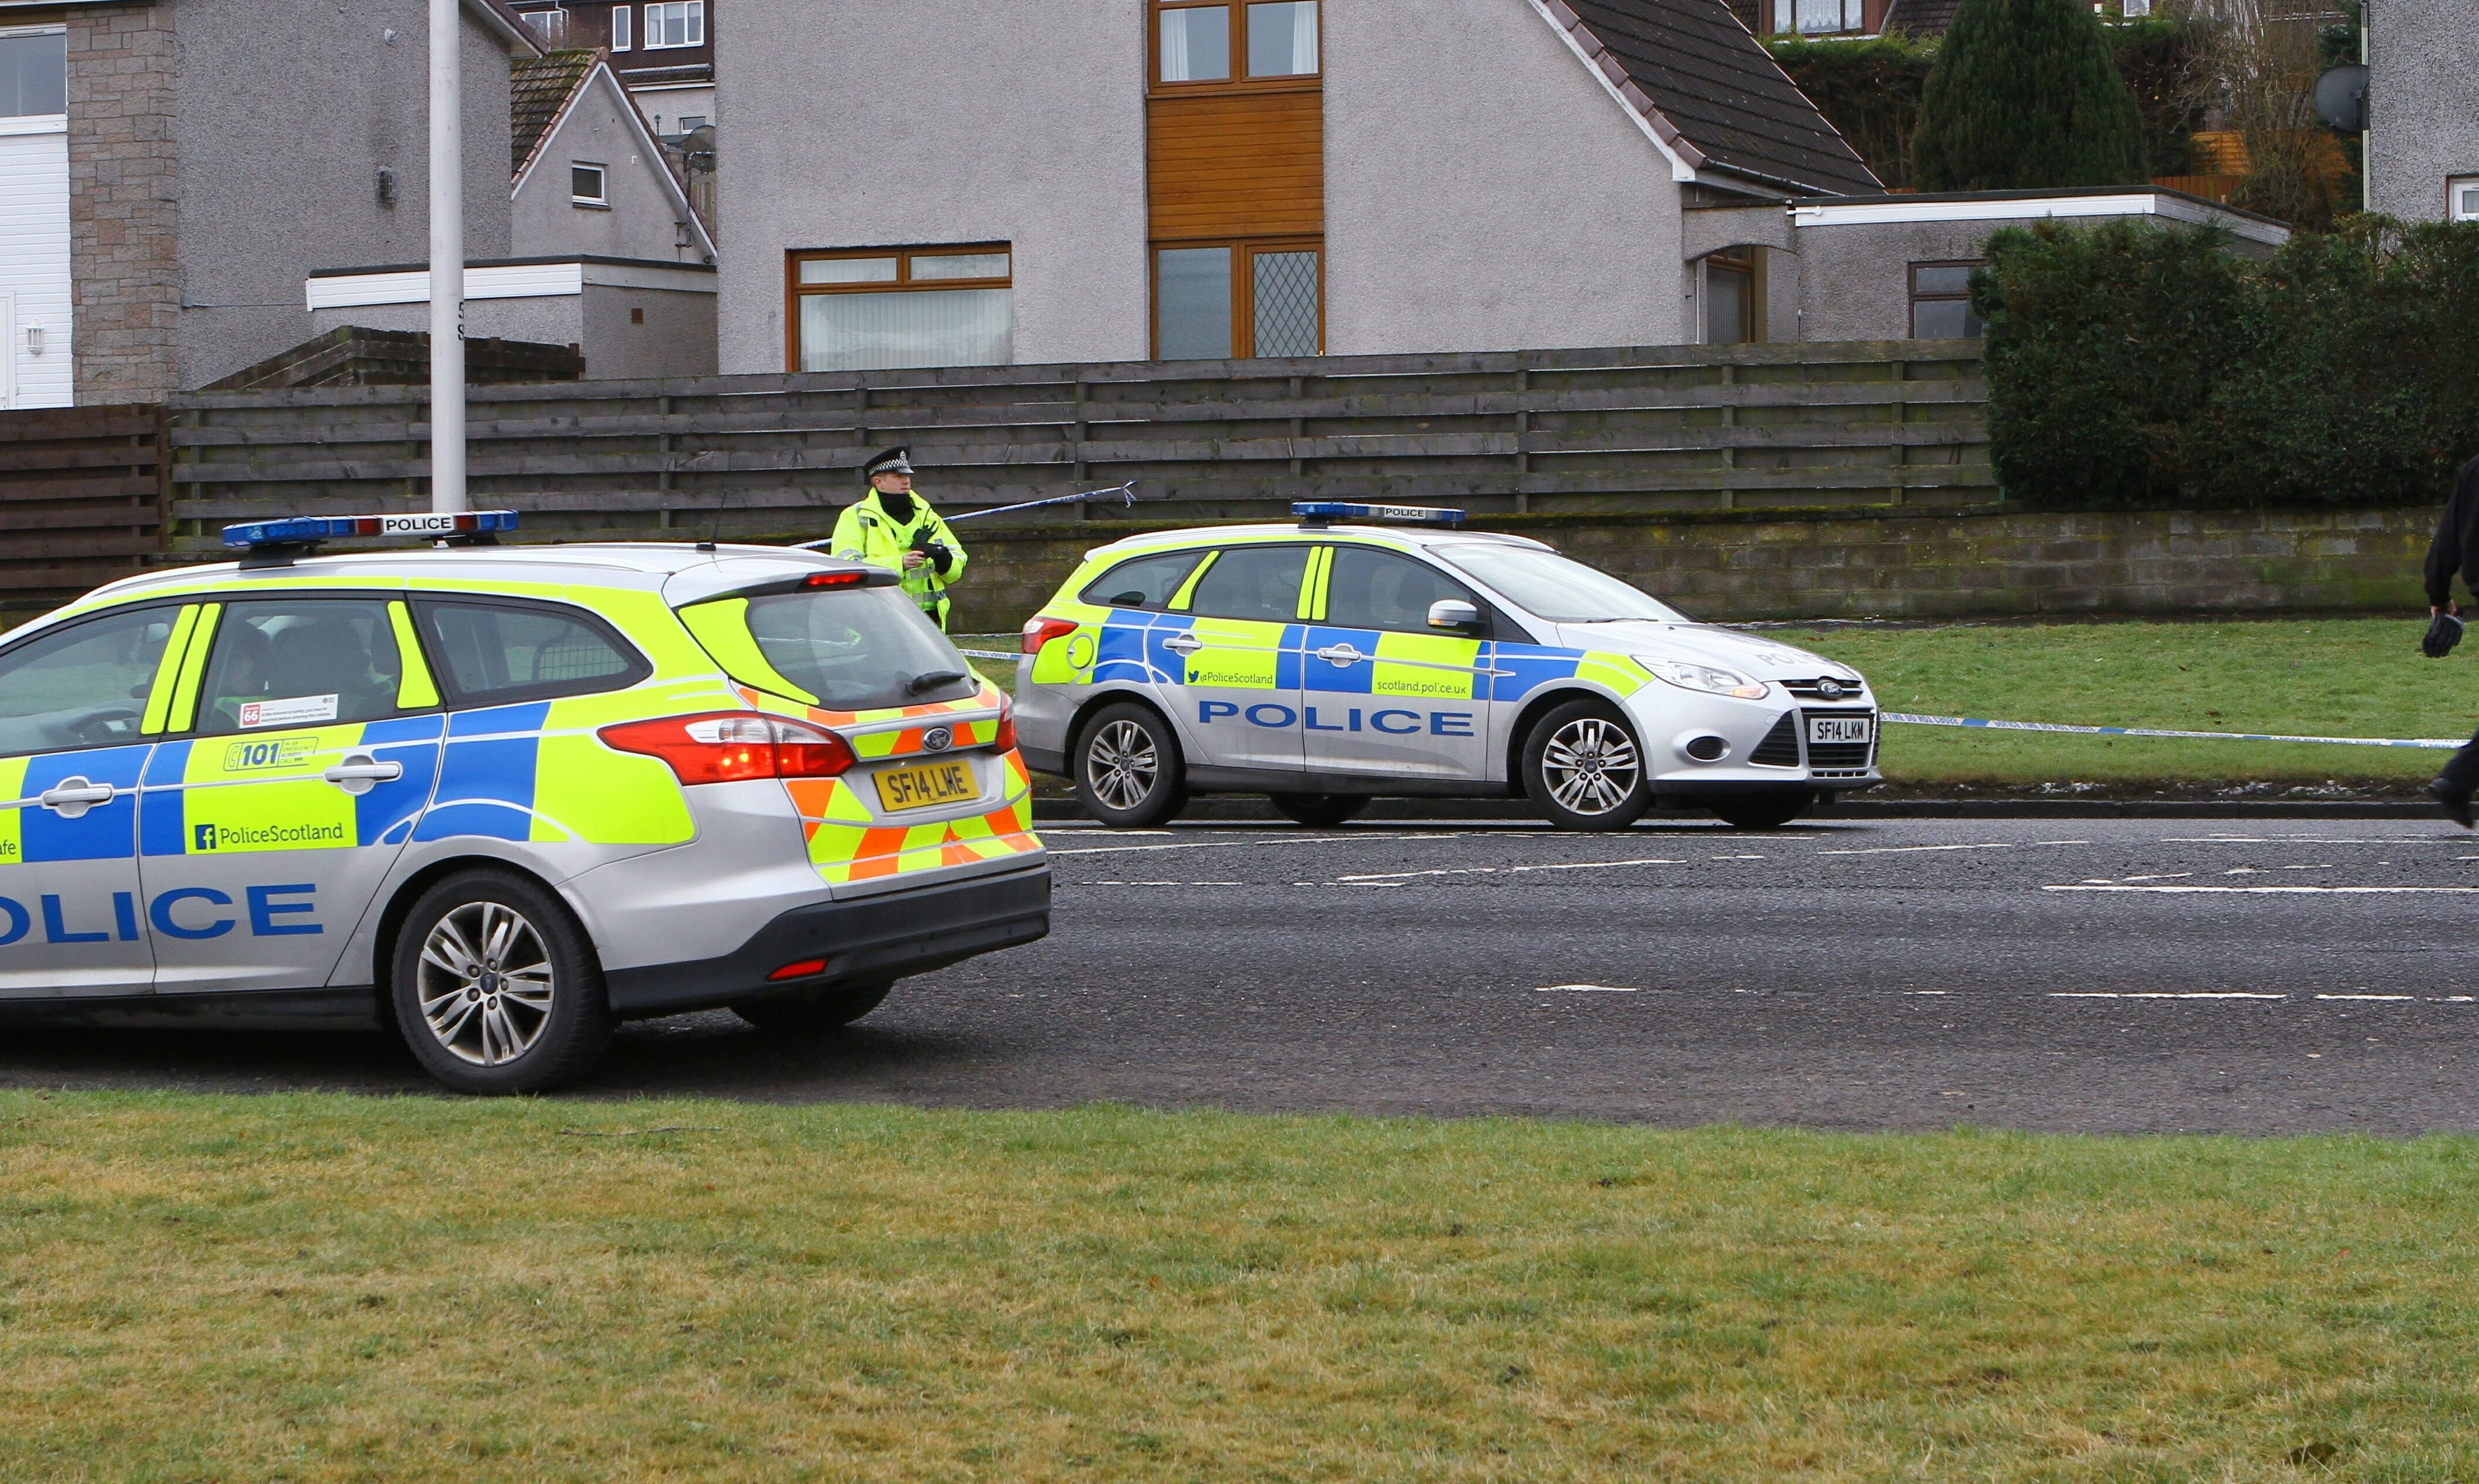 The police activity on South Road in Dundee.